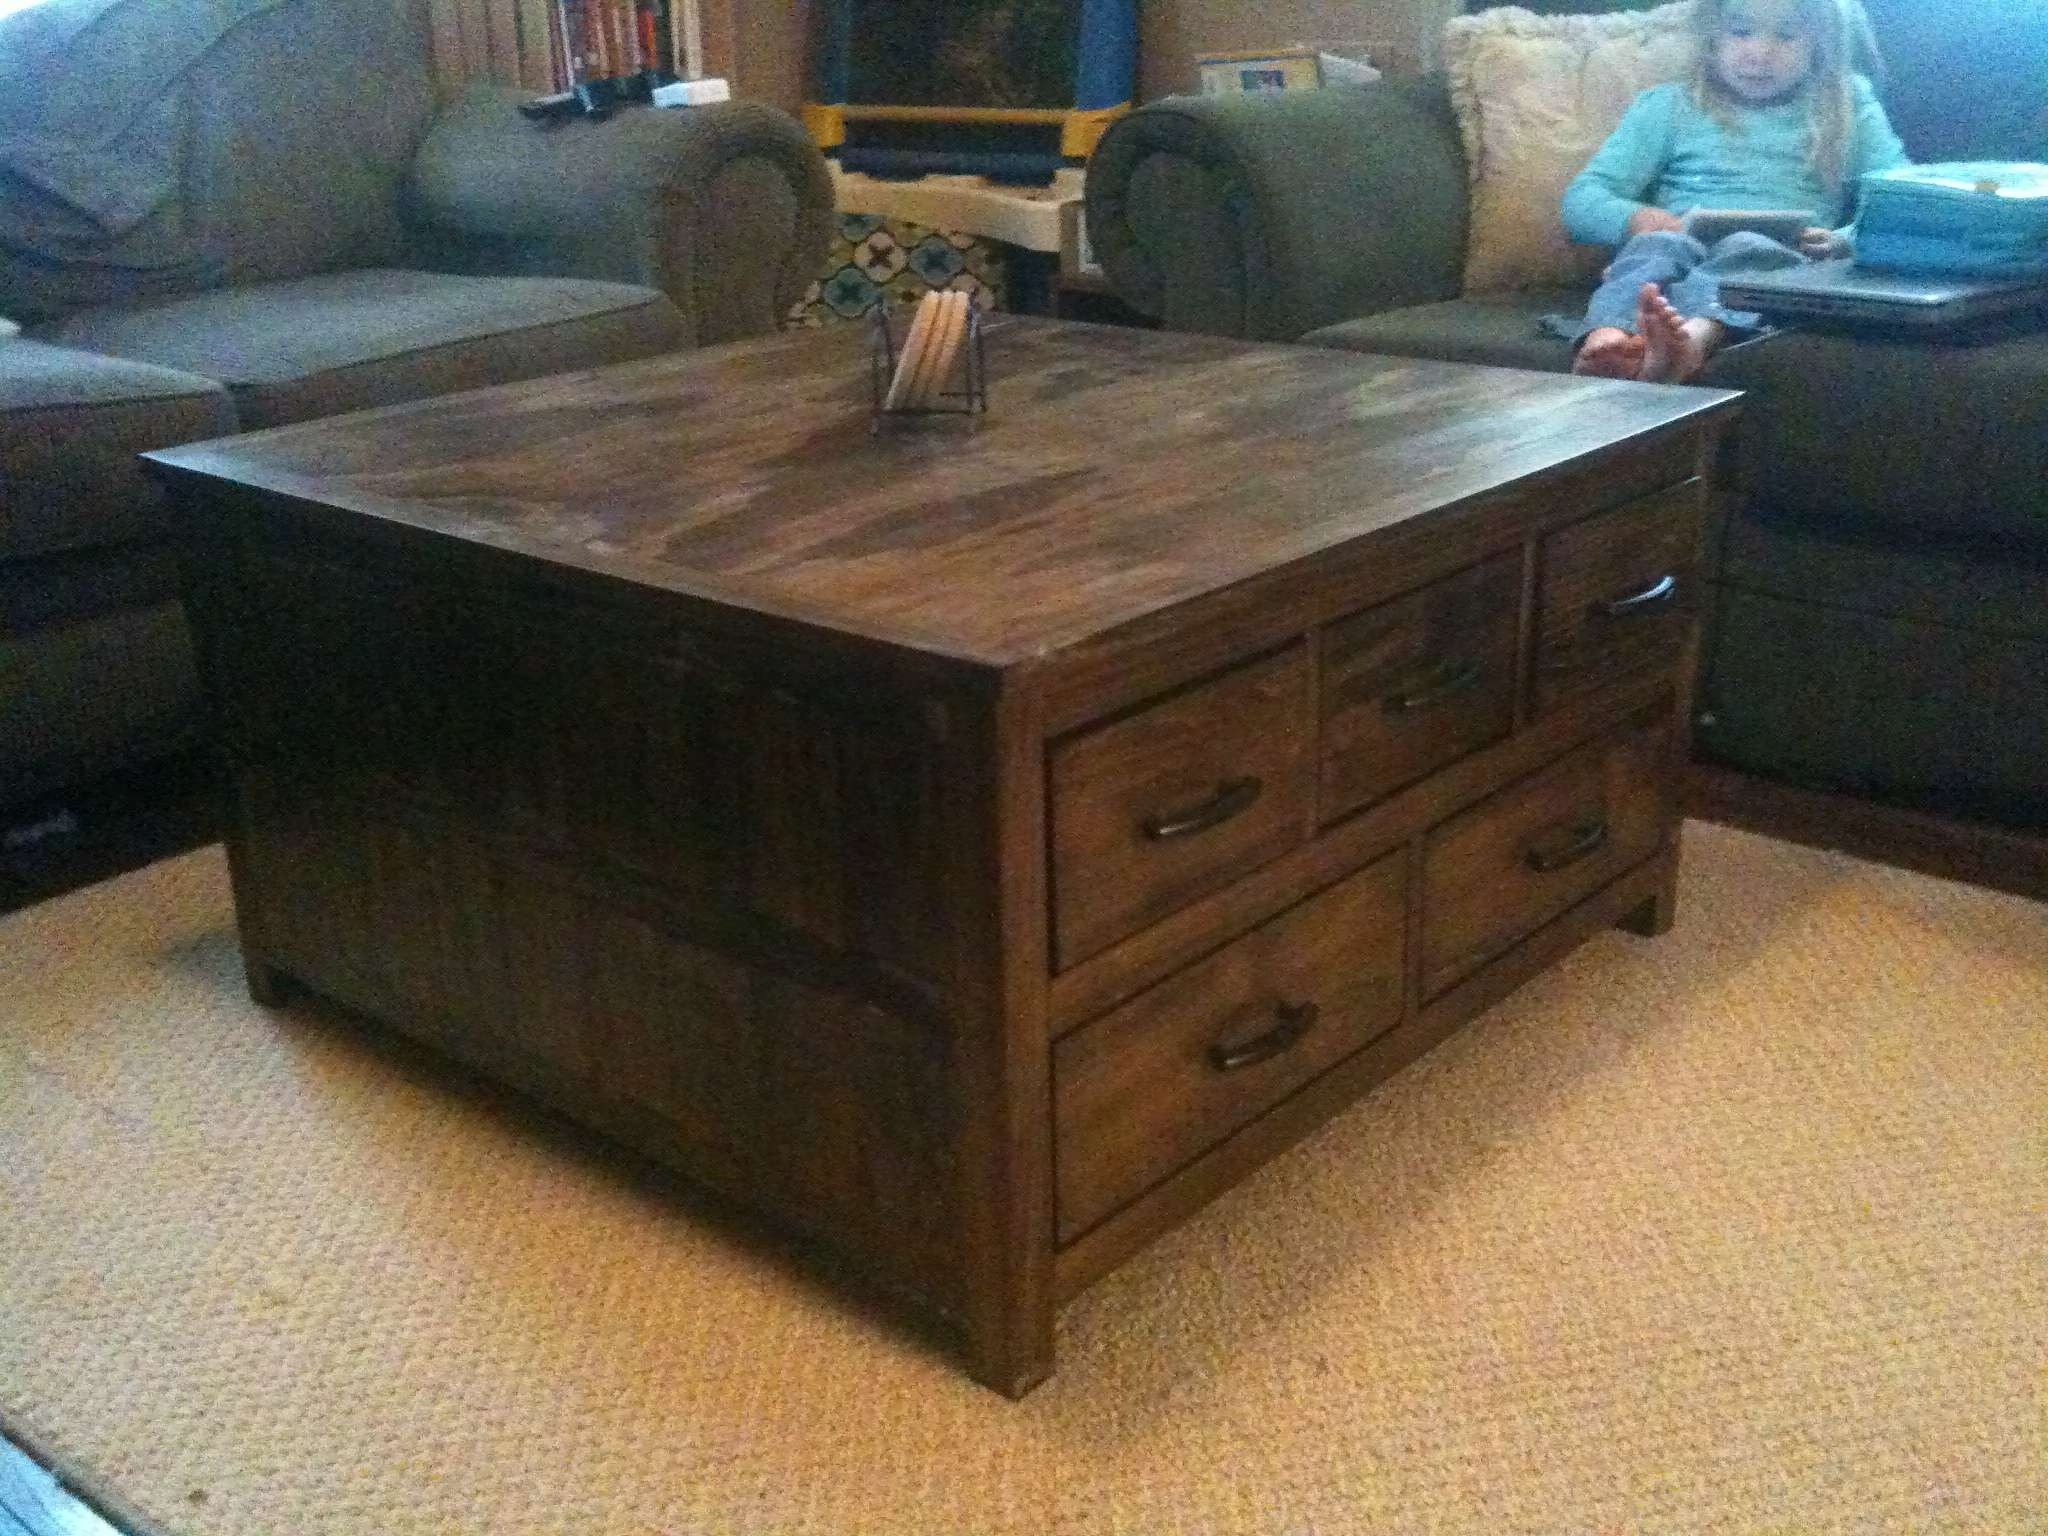 Preferred Hardwood Coffee Tables With Storage Intended For Coffee Table : Marvelous Wood And Metal Coffee Table Rustic Round (View 2 of 20)